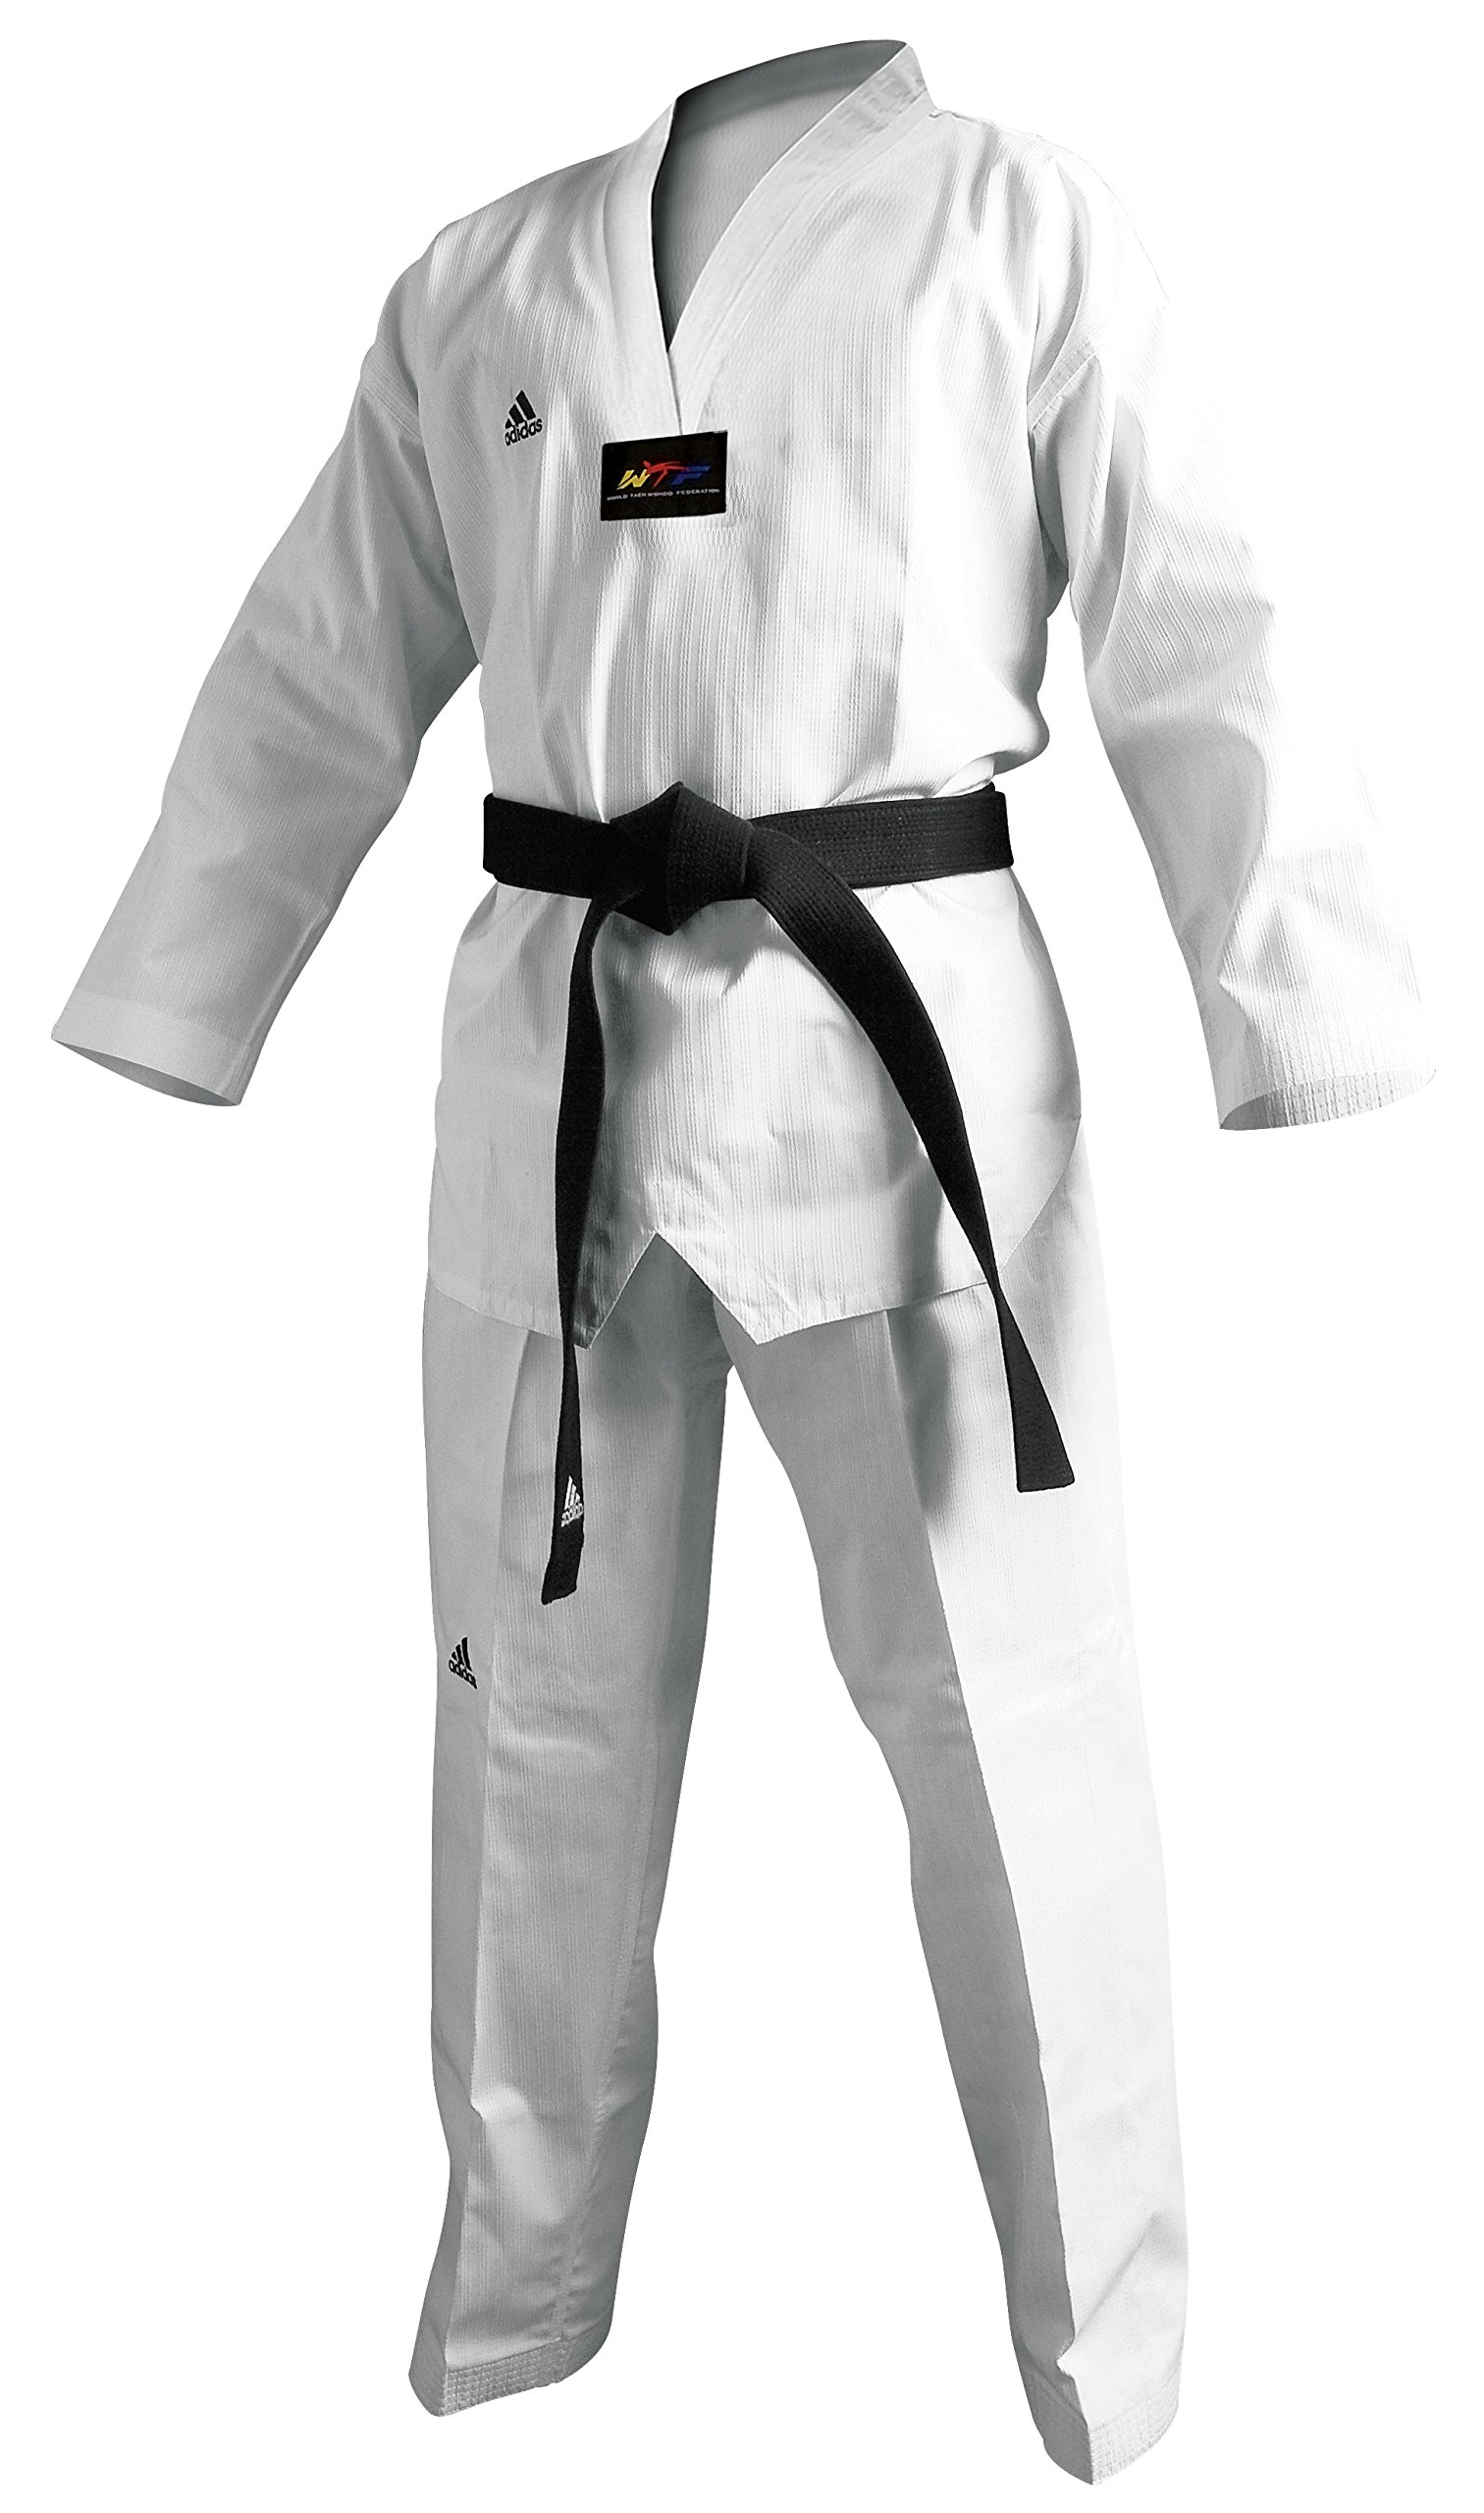 Adidas Champion II White Taekwondo Uniforms (2) by adidas